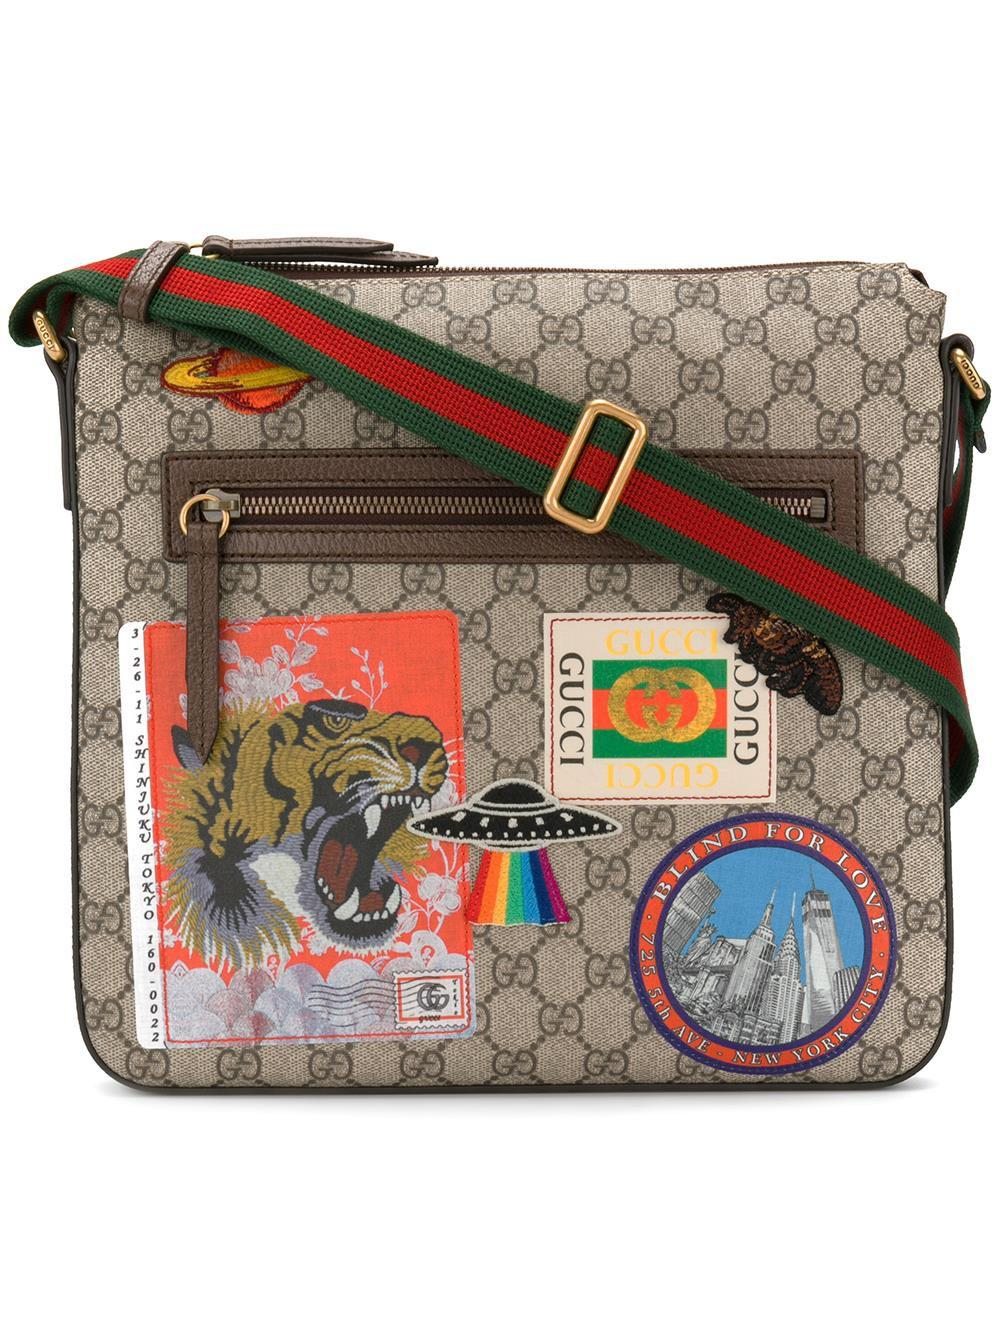 ae0384513590 Gucci Courrier Soft Gg Supreme Crossbody Bag for Men - Lyst